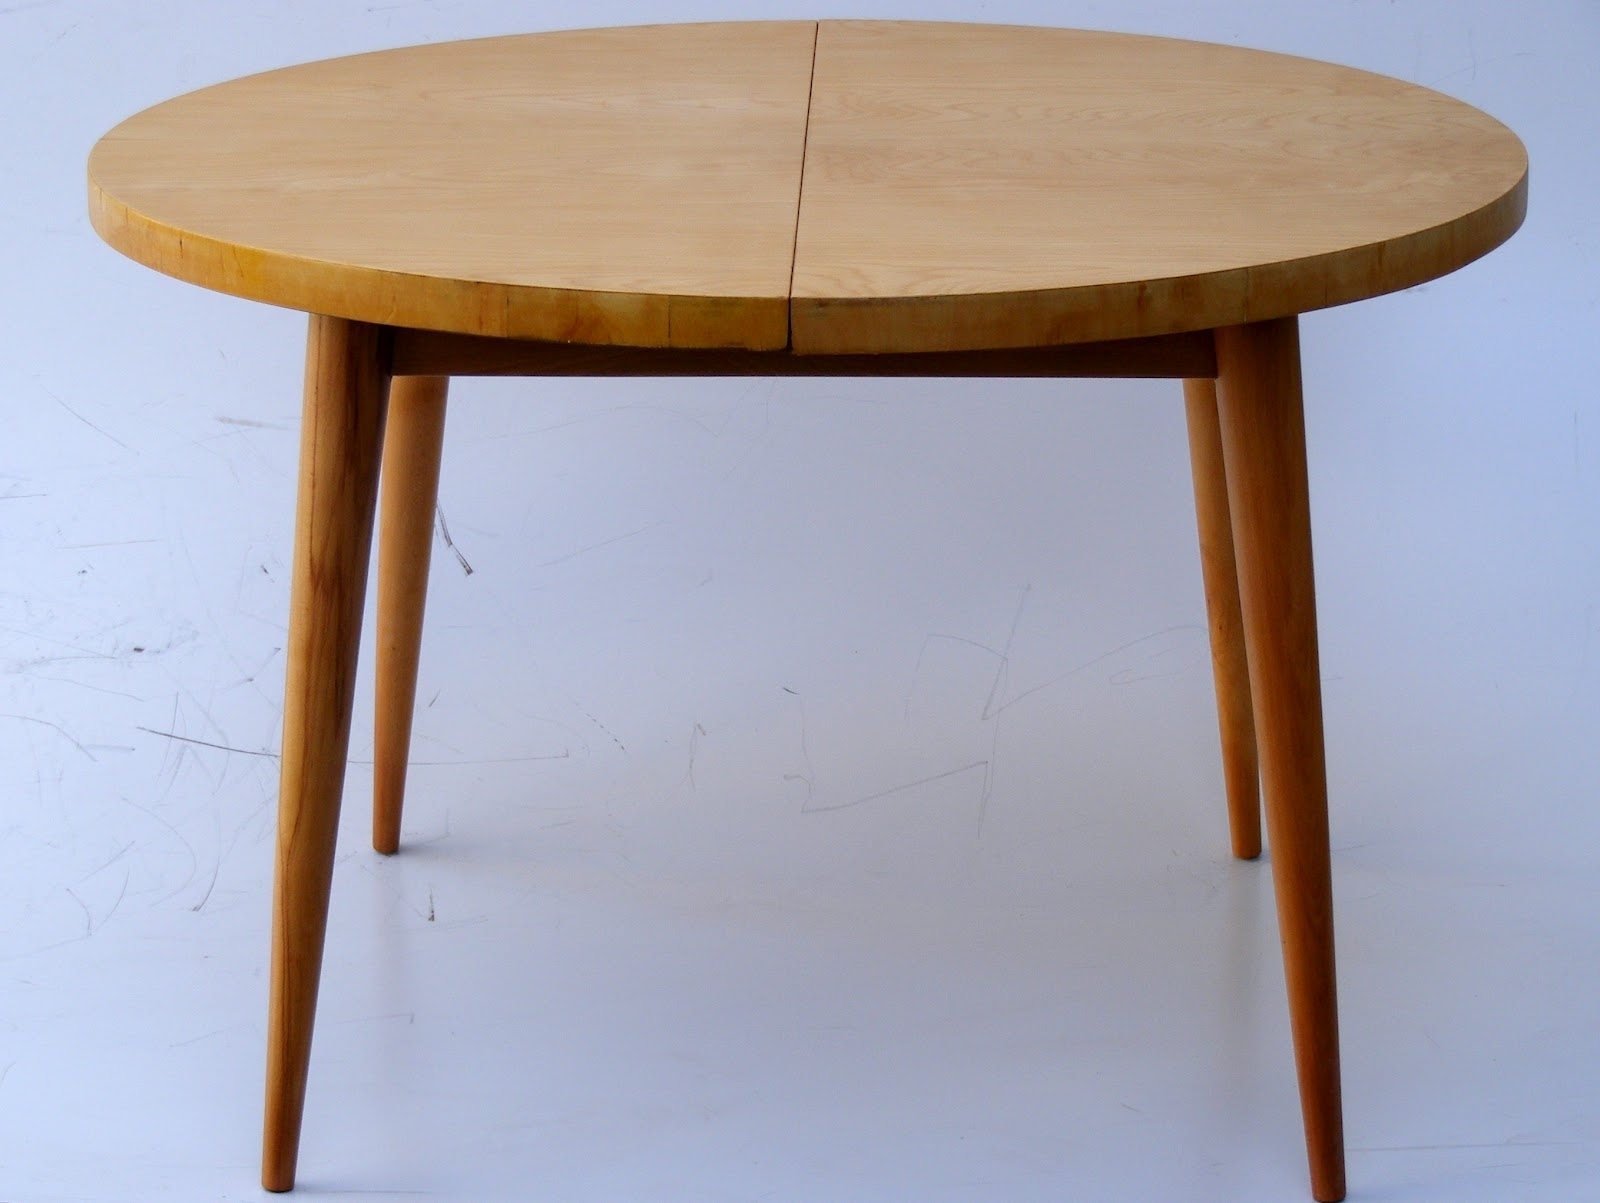 Trendy Reasons To Invest In Round Extendable Dining Table – Blogbeen In Extended Round Dining Tables (View 24 of 25)